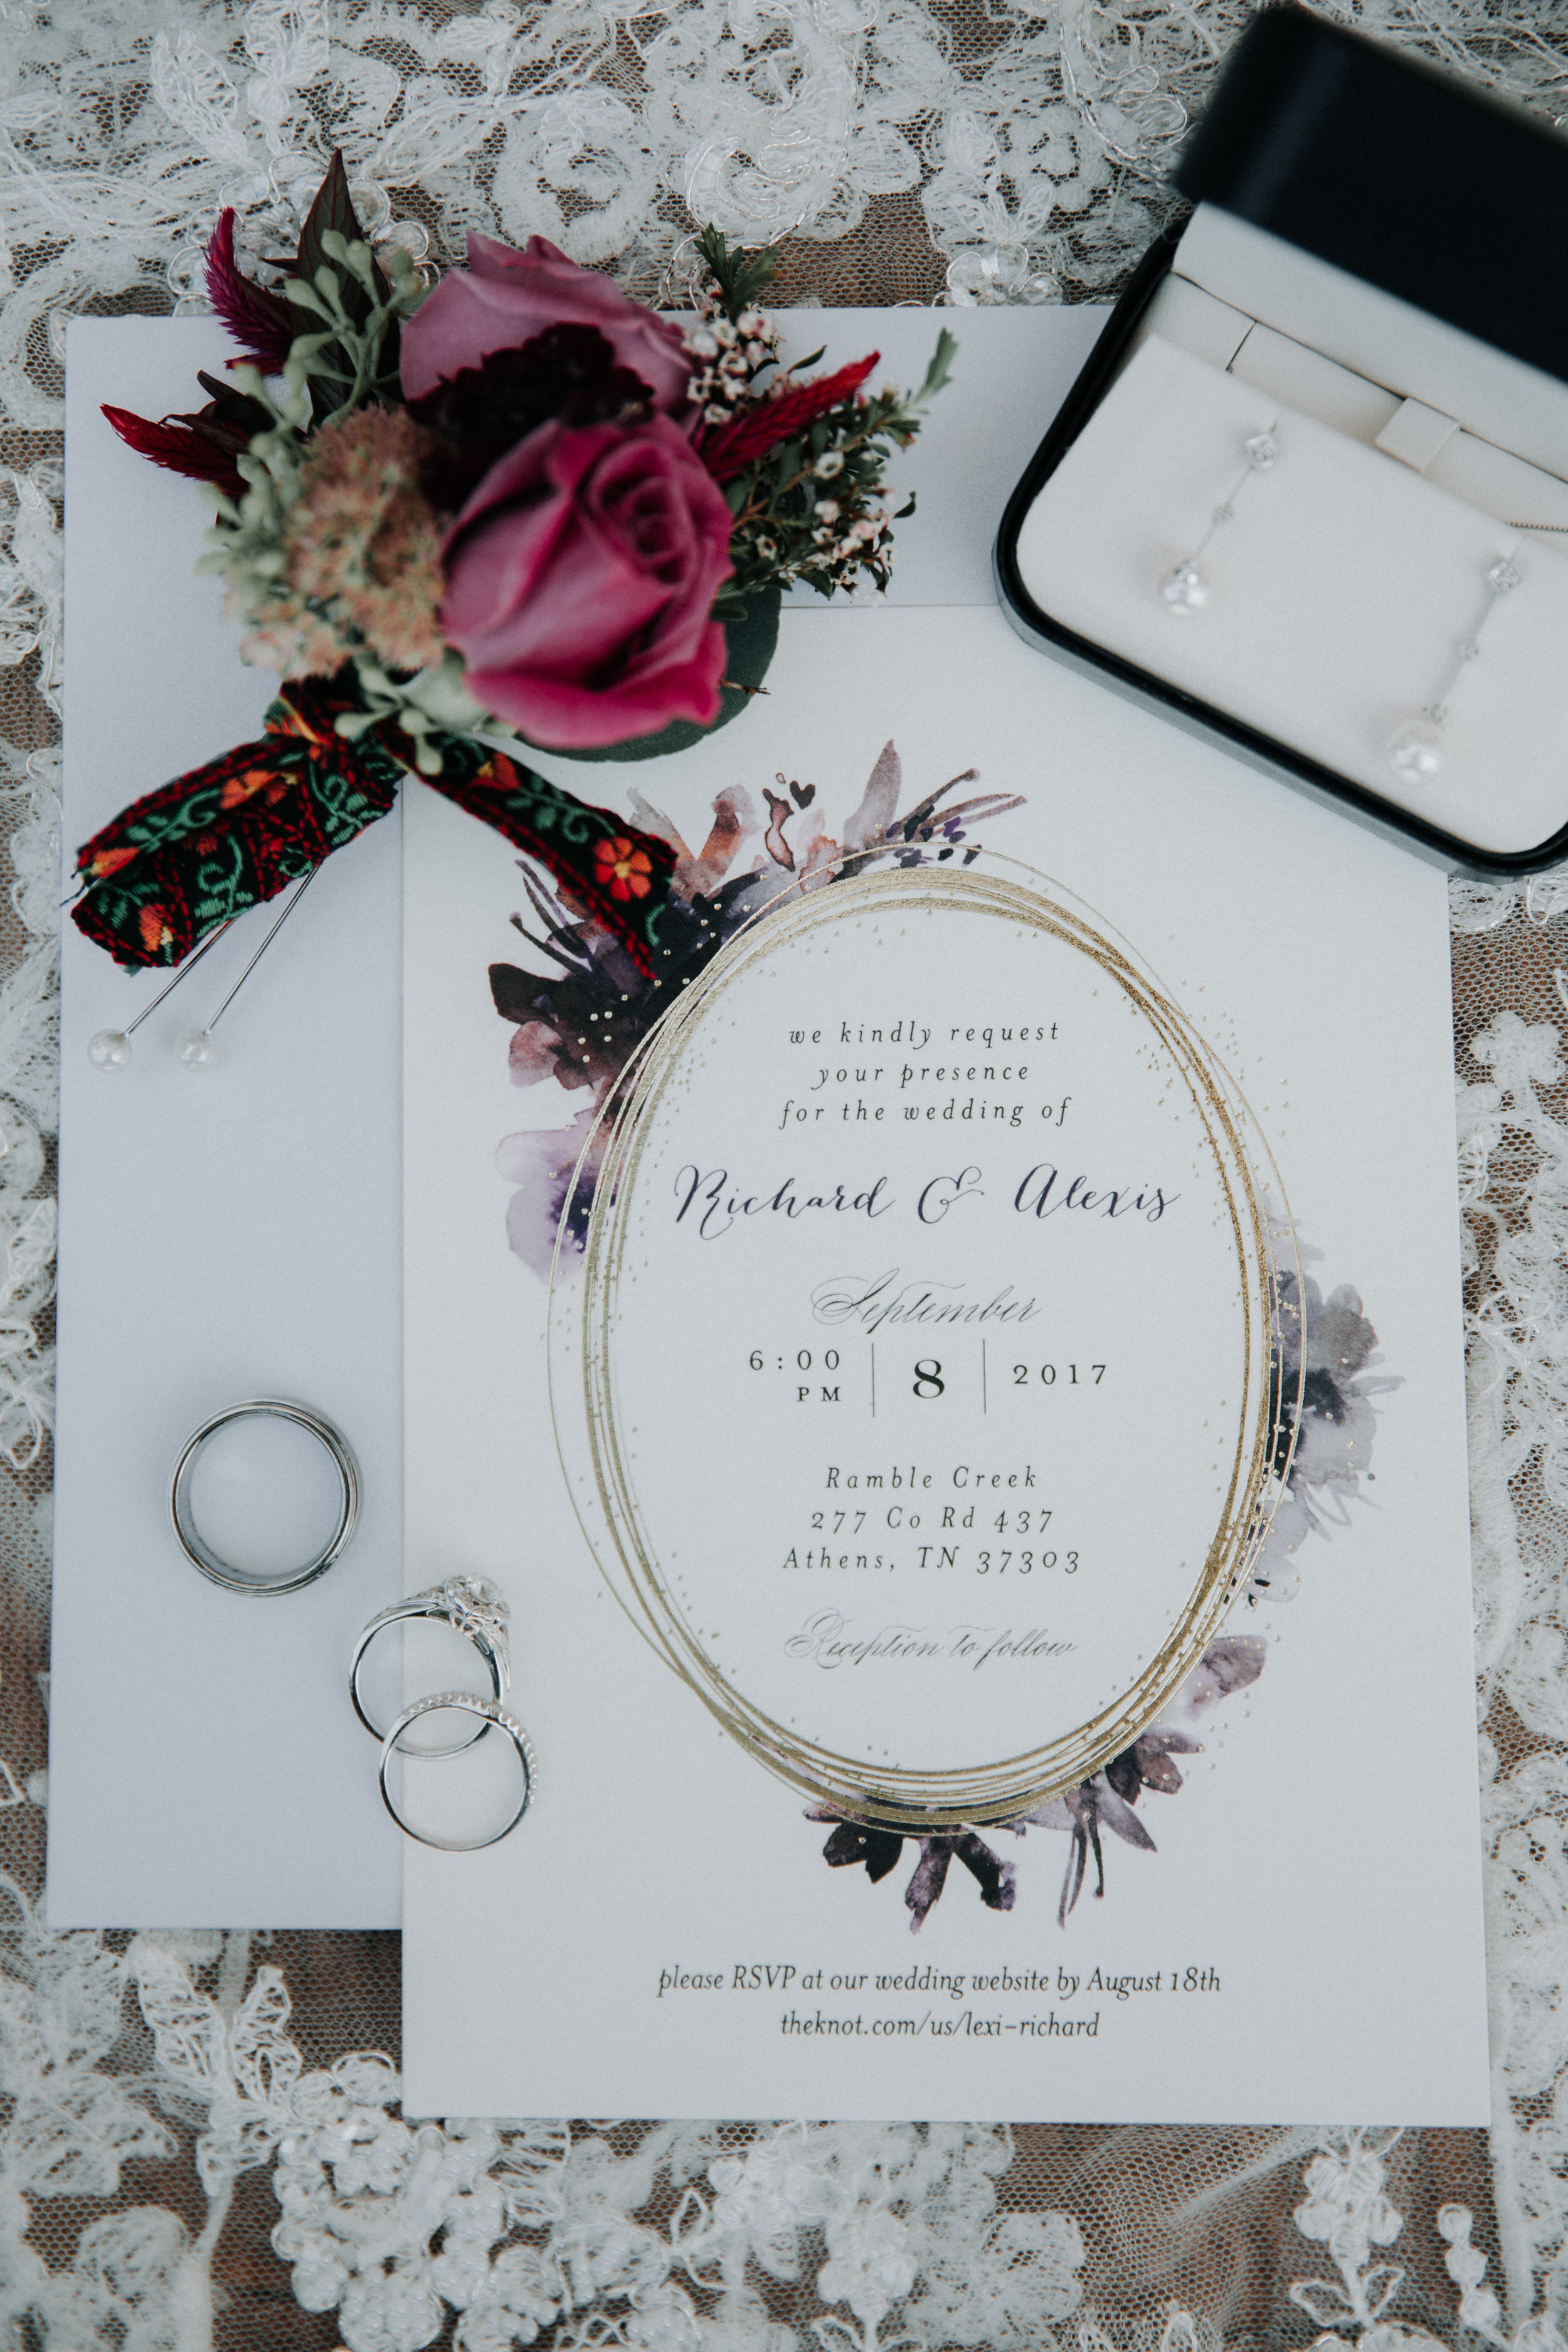 Simple Floral Wedding Invitations - Athens, Tennesee Barn Wedding -- The Overwhelmed Bride Wedding Blog